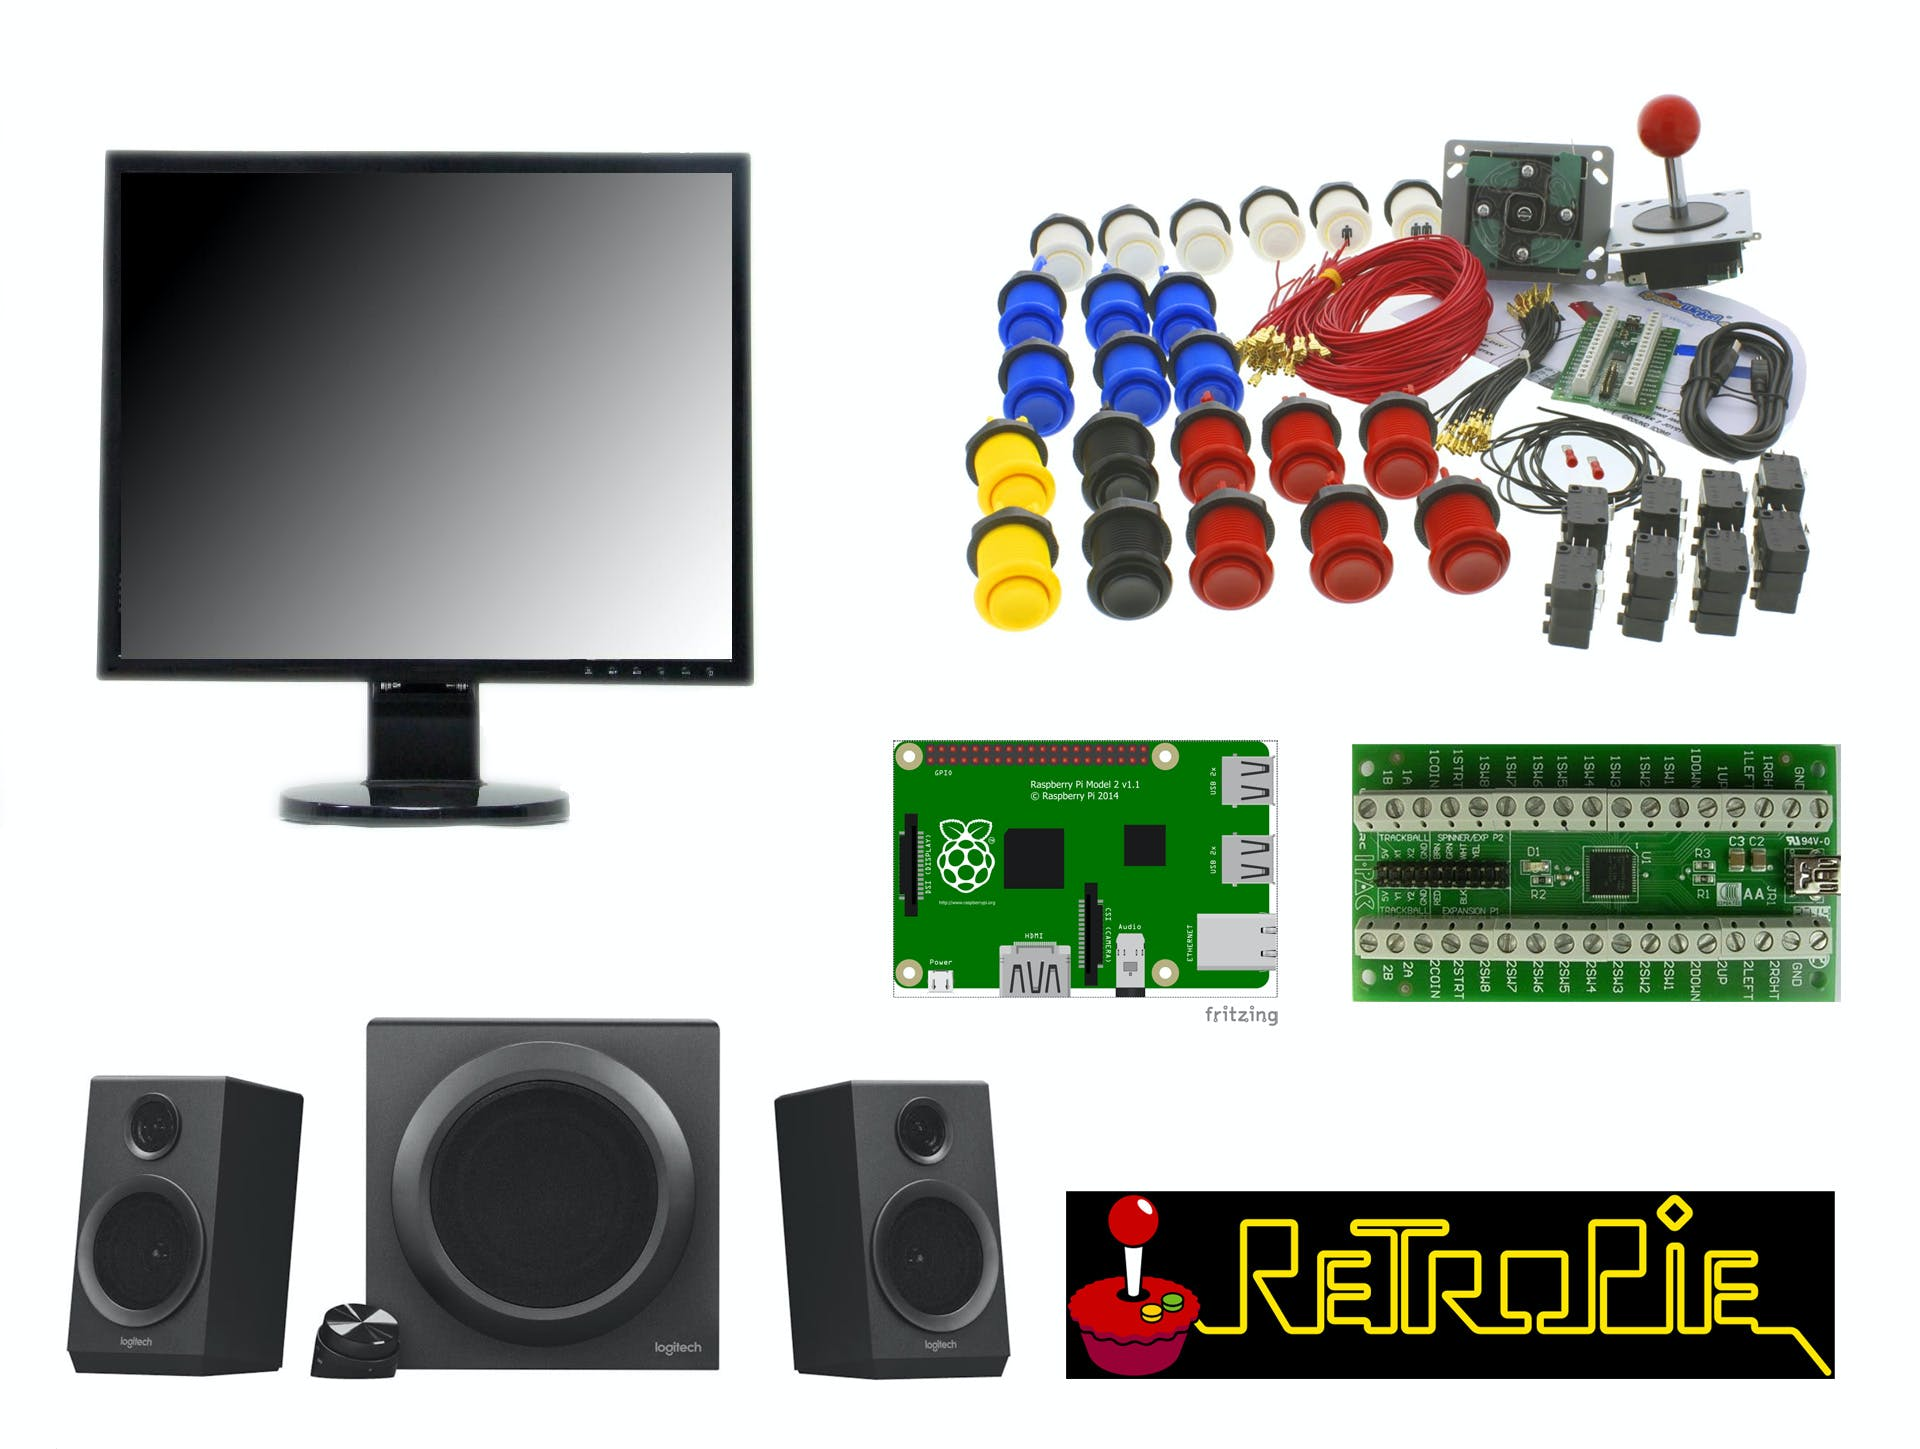 The main parts needed for the arcade cabinet